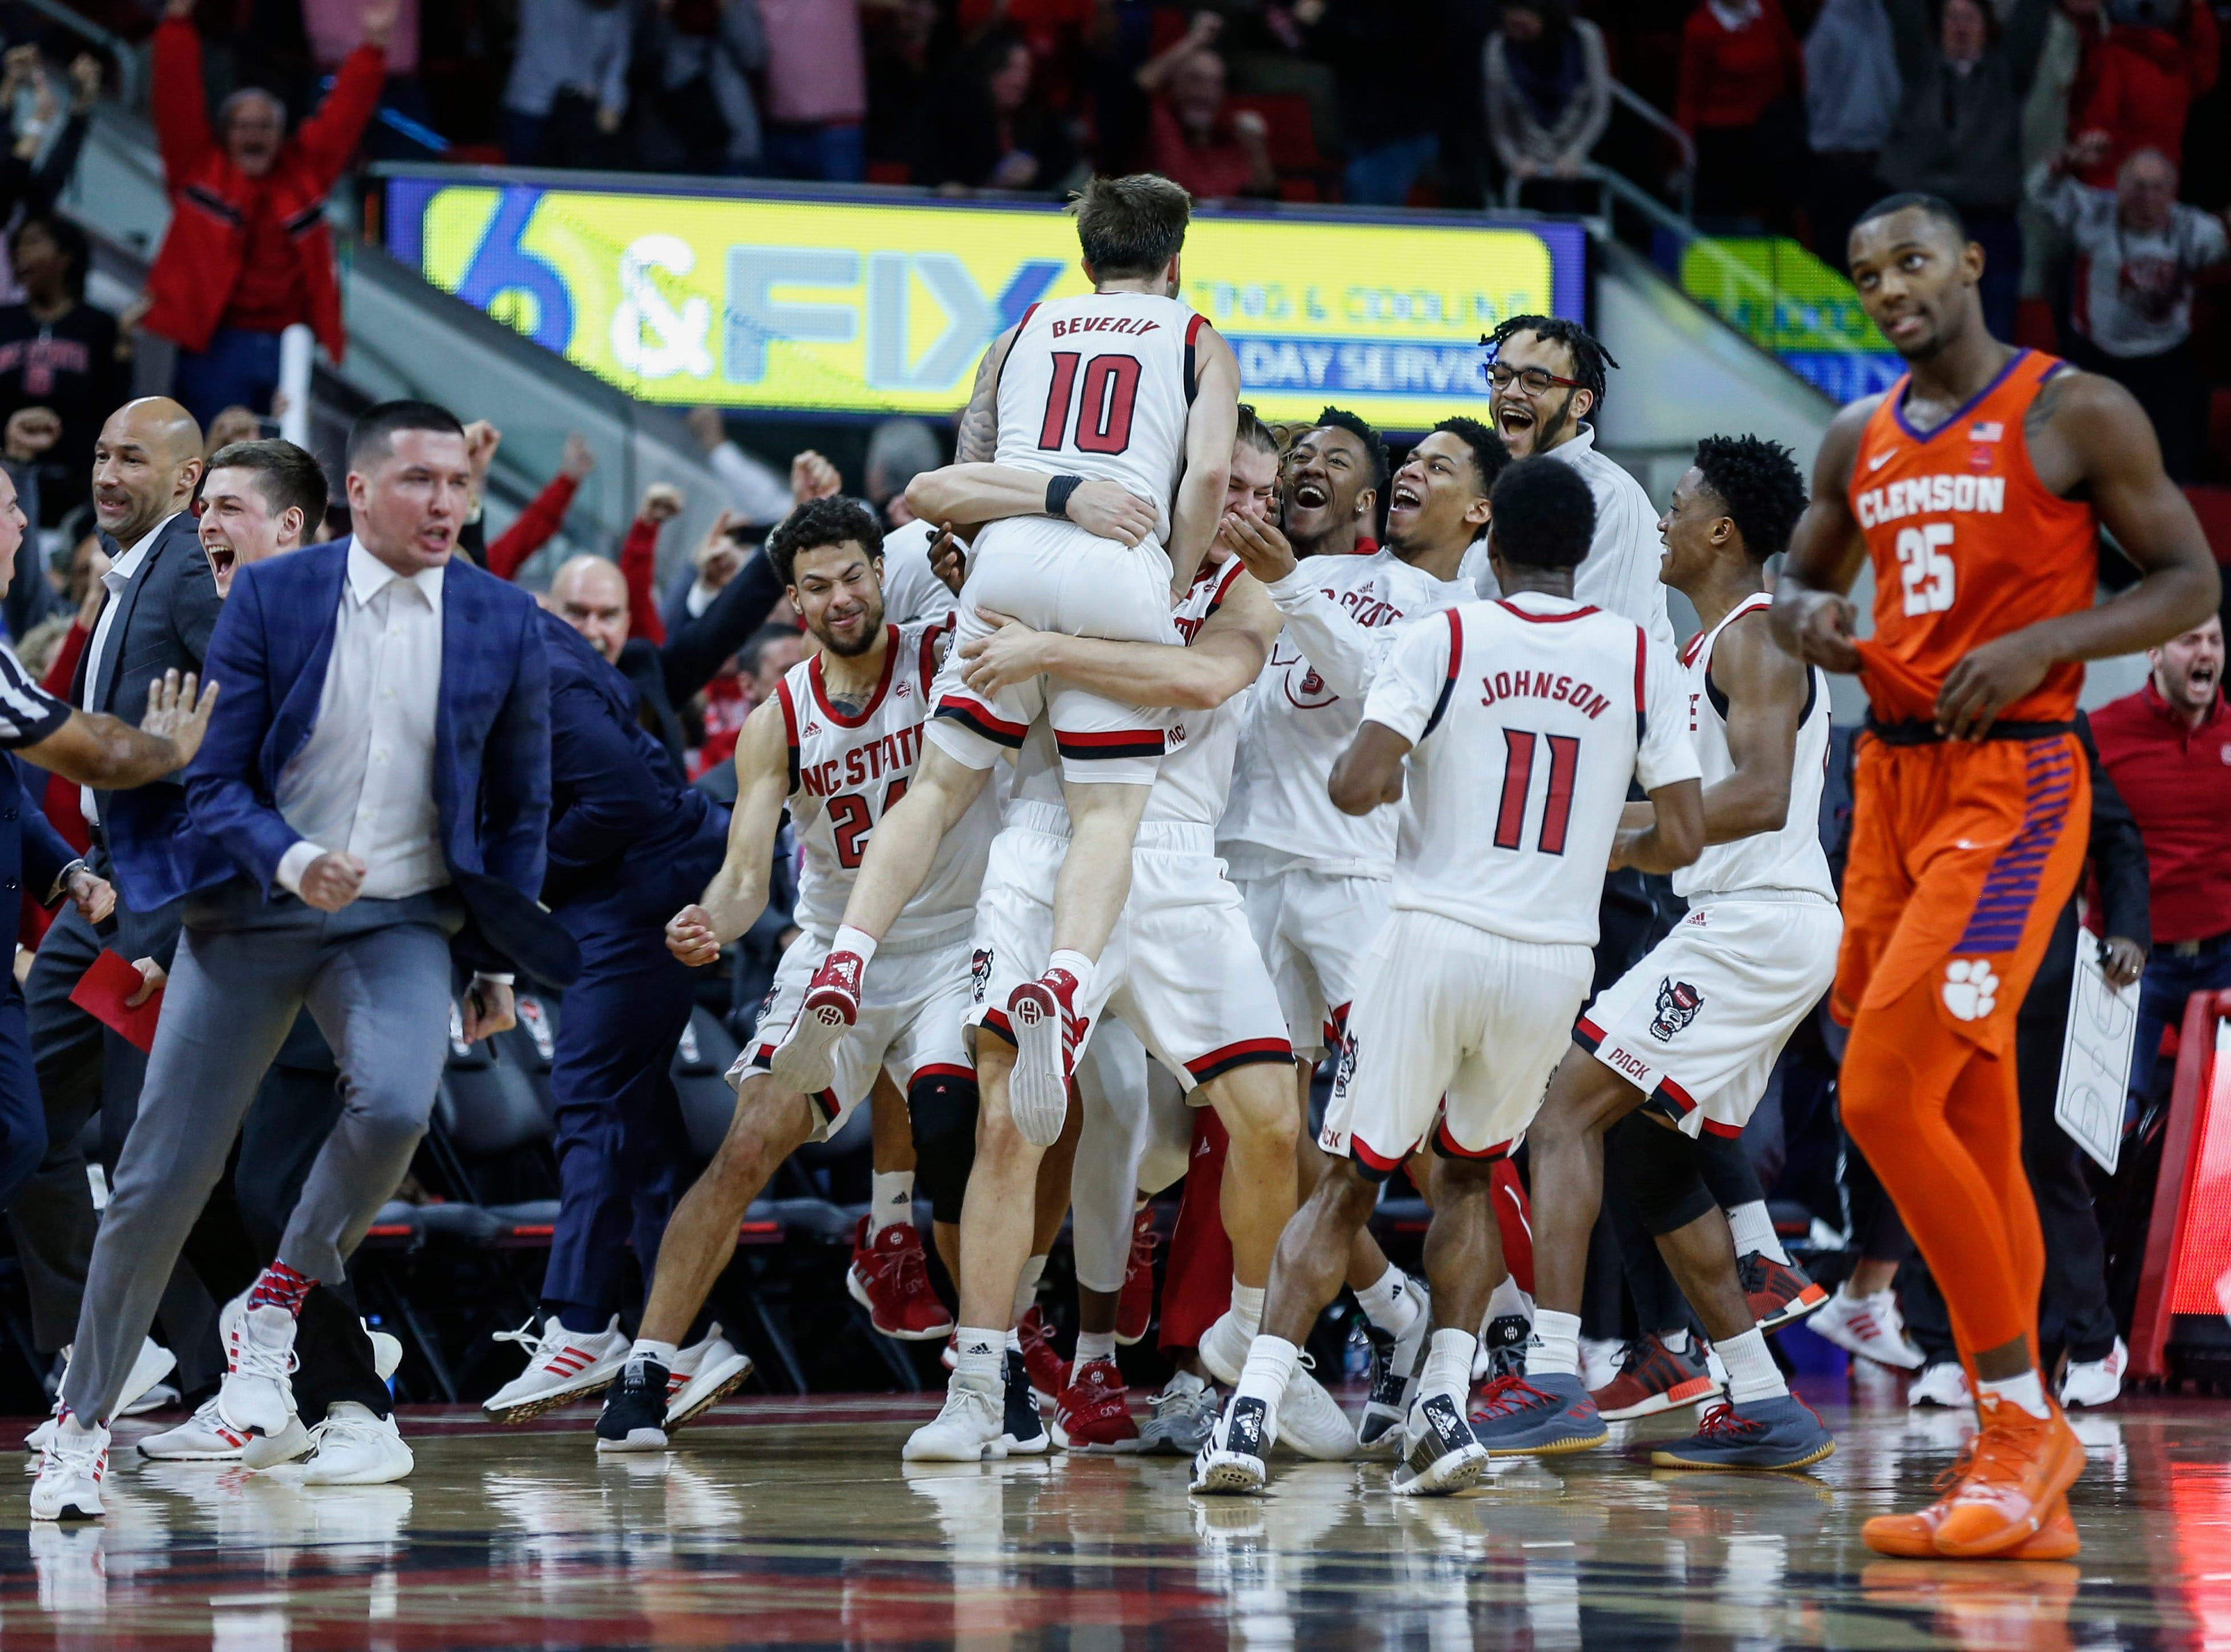 Jan 26, 2019; Raleigh, NC, USA; North Carolina State Wolfpack guard Braxton Beverly (10)  celebrates with teammates after scoring at the buzzer against the Clemson Tigers in the second half at PNC Arena. Mandatory Credit: Nell Redmond-USA TODAY Sports